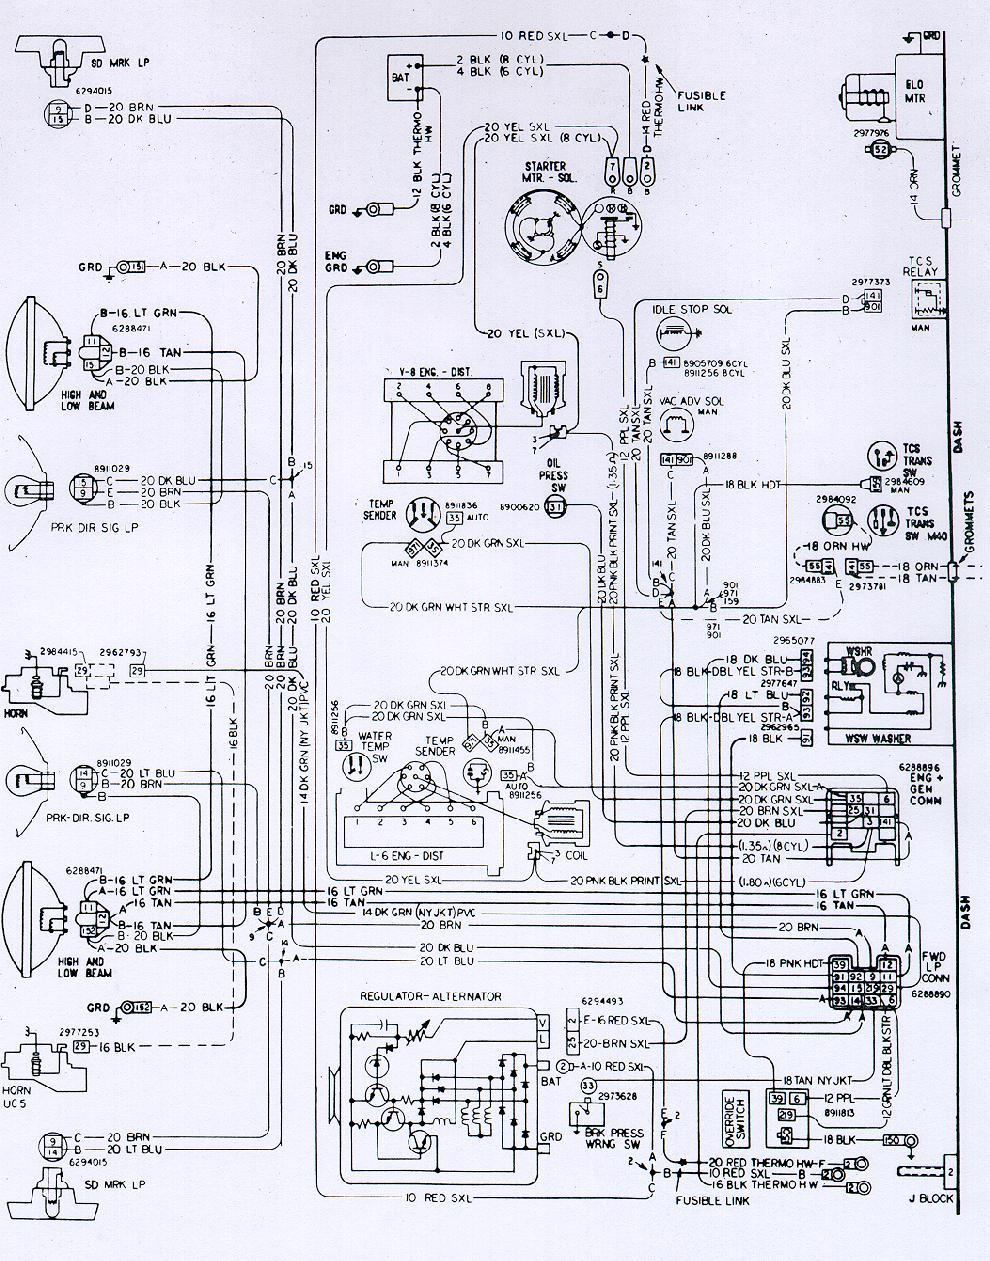 hight resolution of for a 1970 chevy camaro wiring harness wiring diagram third level 1976 chevy camaro wiring diagram 1970 chevy camaro wiring diagram